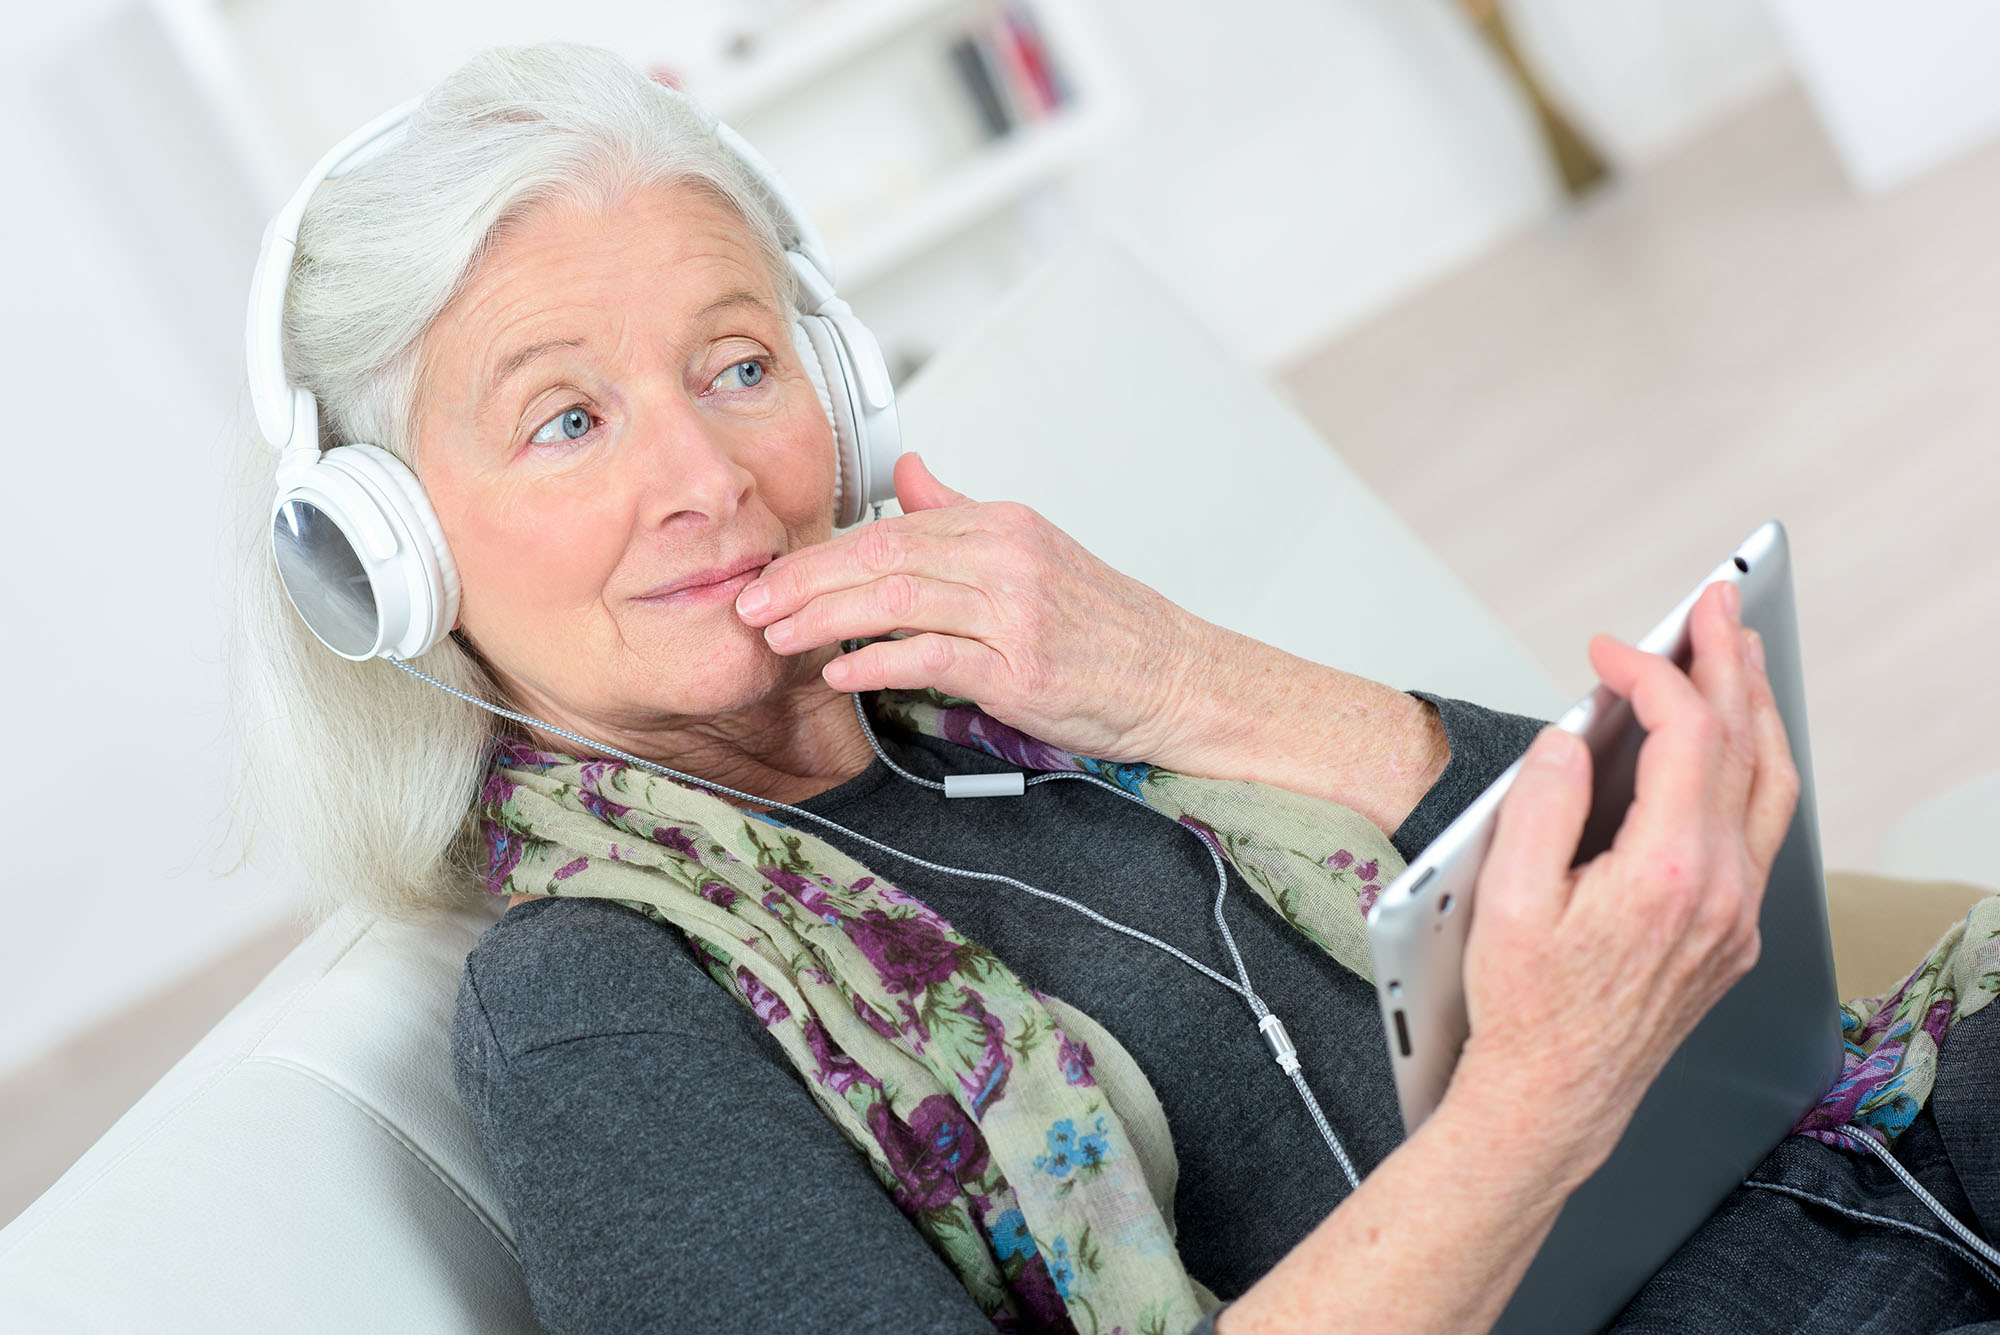 Revolutionary apps for people with hearing loss